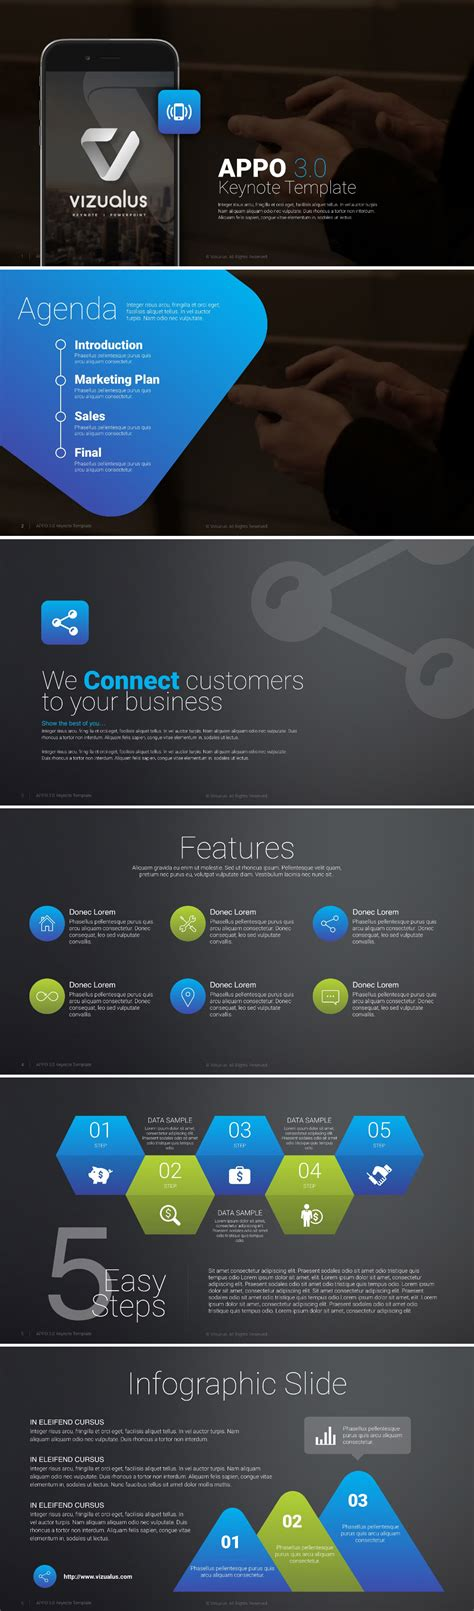 free keynote templates for business free appo 3 0 keynote template graphicsfuel